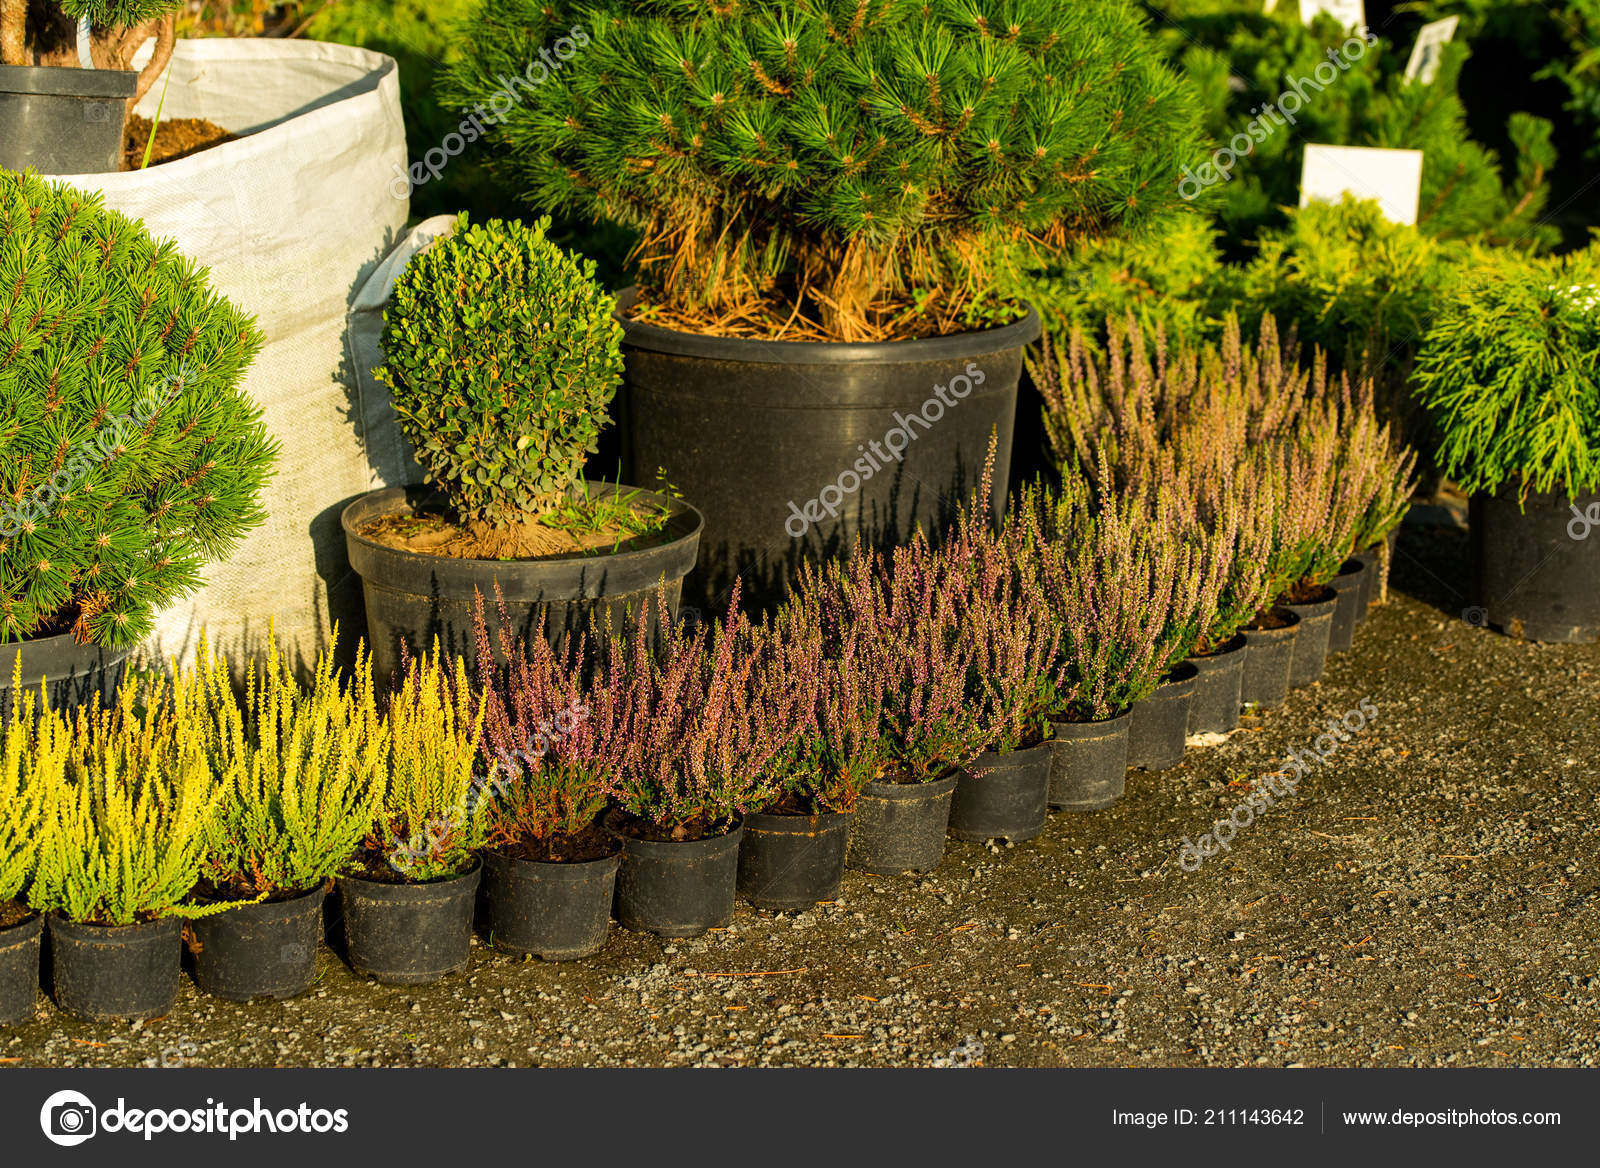 bushes in tubs for sale — Stock Photo © Posonsky #211143642